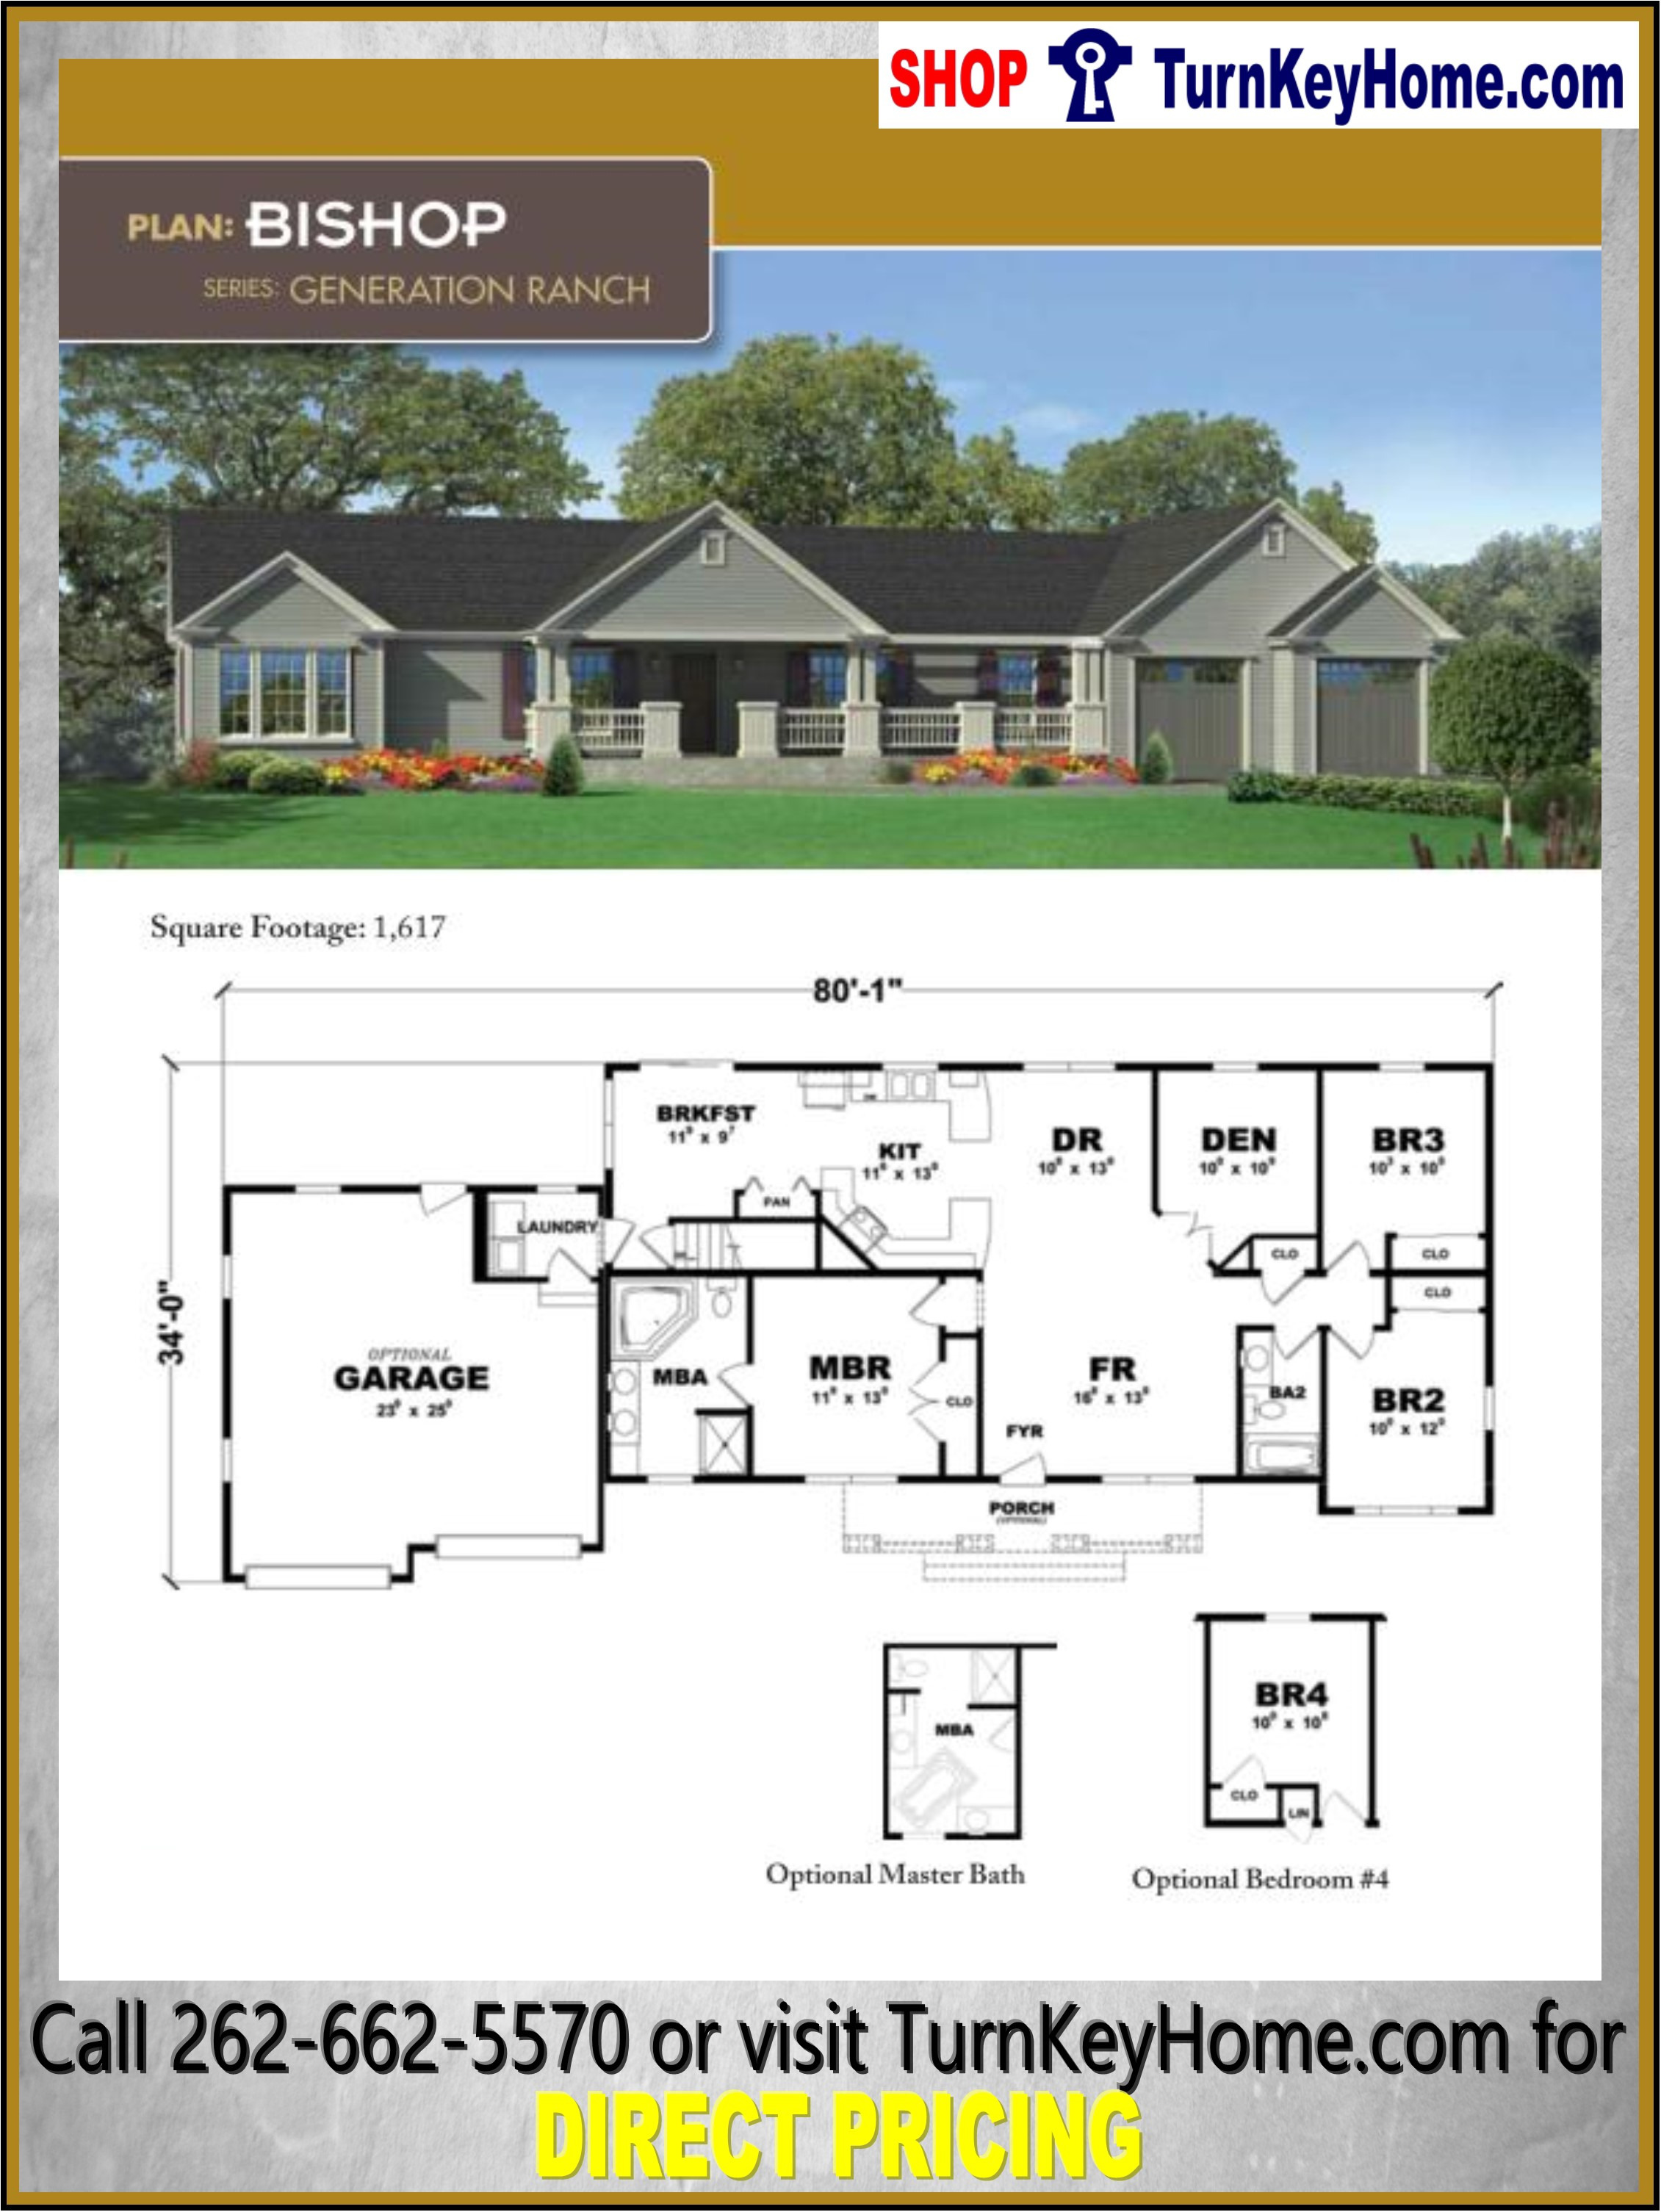 Modular House Plans with Prices Luxury Bishop Ranch Home 3 Bed 2 Bath Plan 1617 Sf Priced From